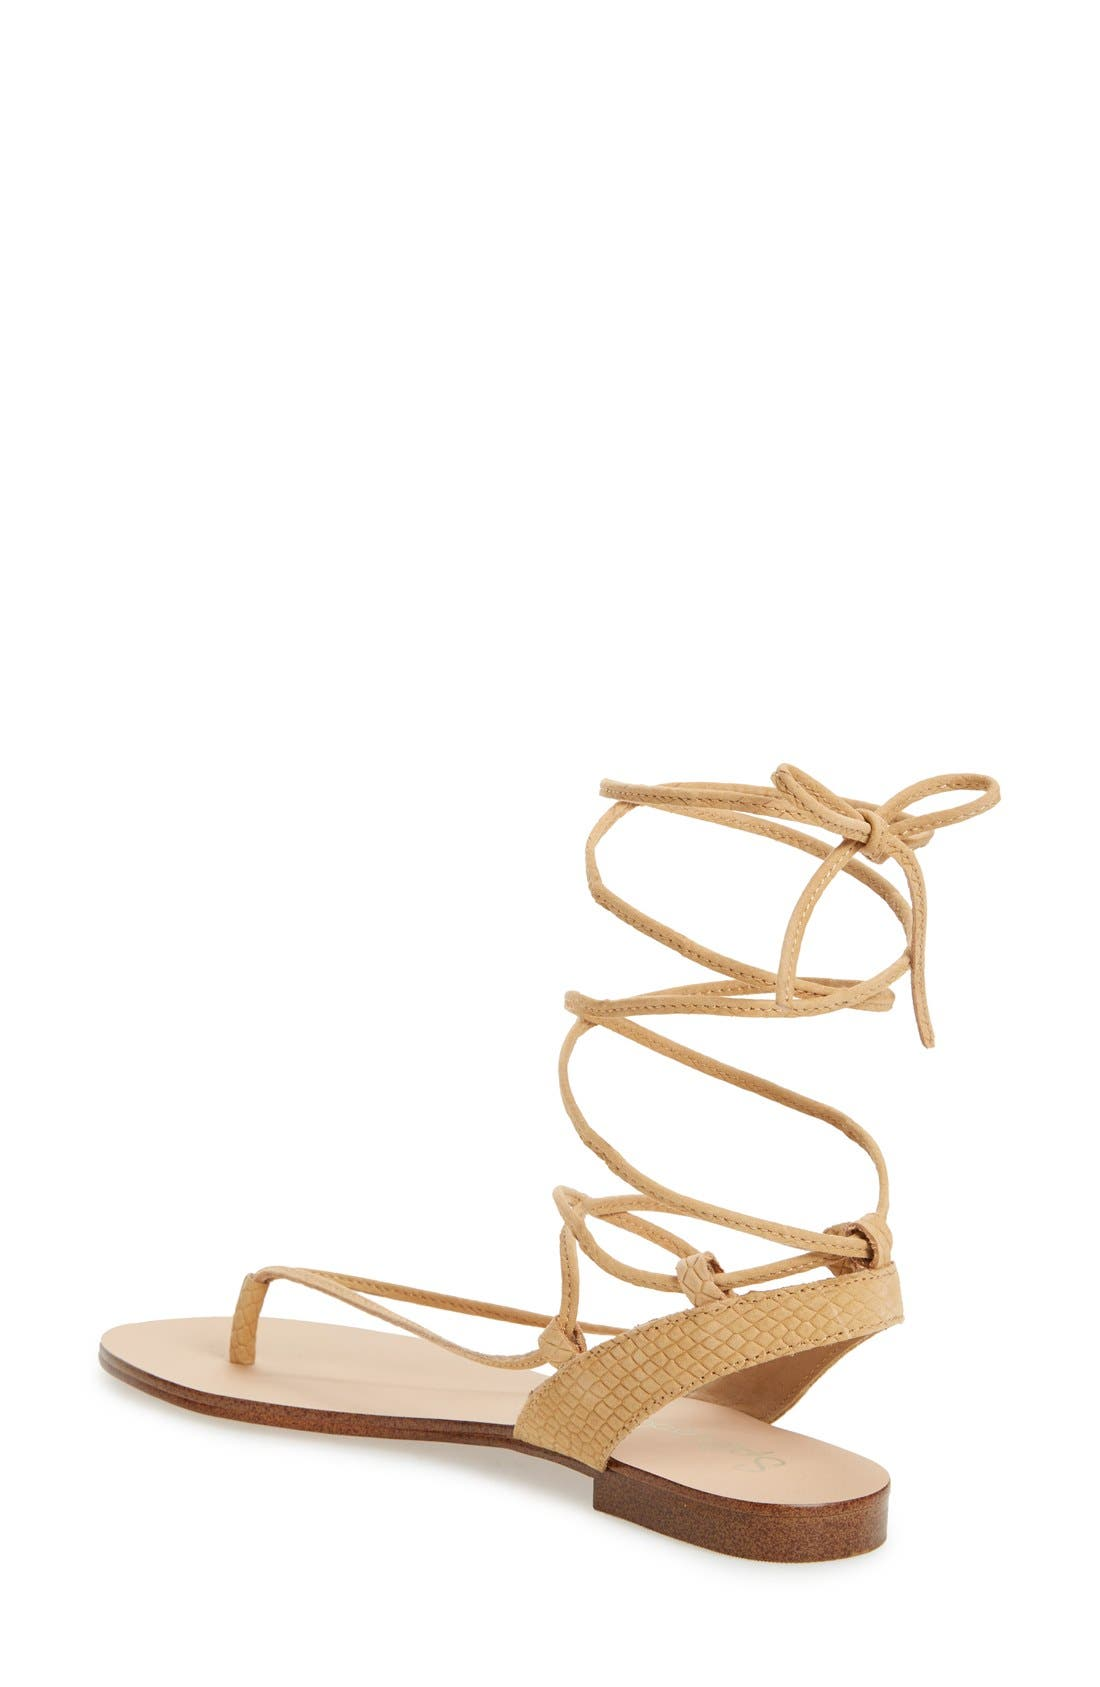 Alternate Image 2  - Splendid 'Candee' Wraparound Lace Flat Sandal (Women)